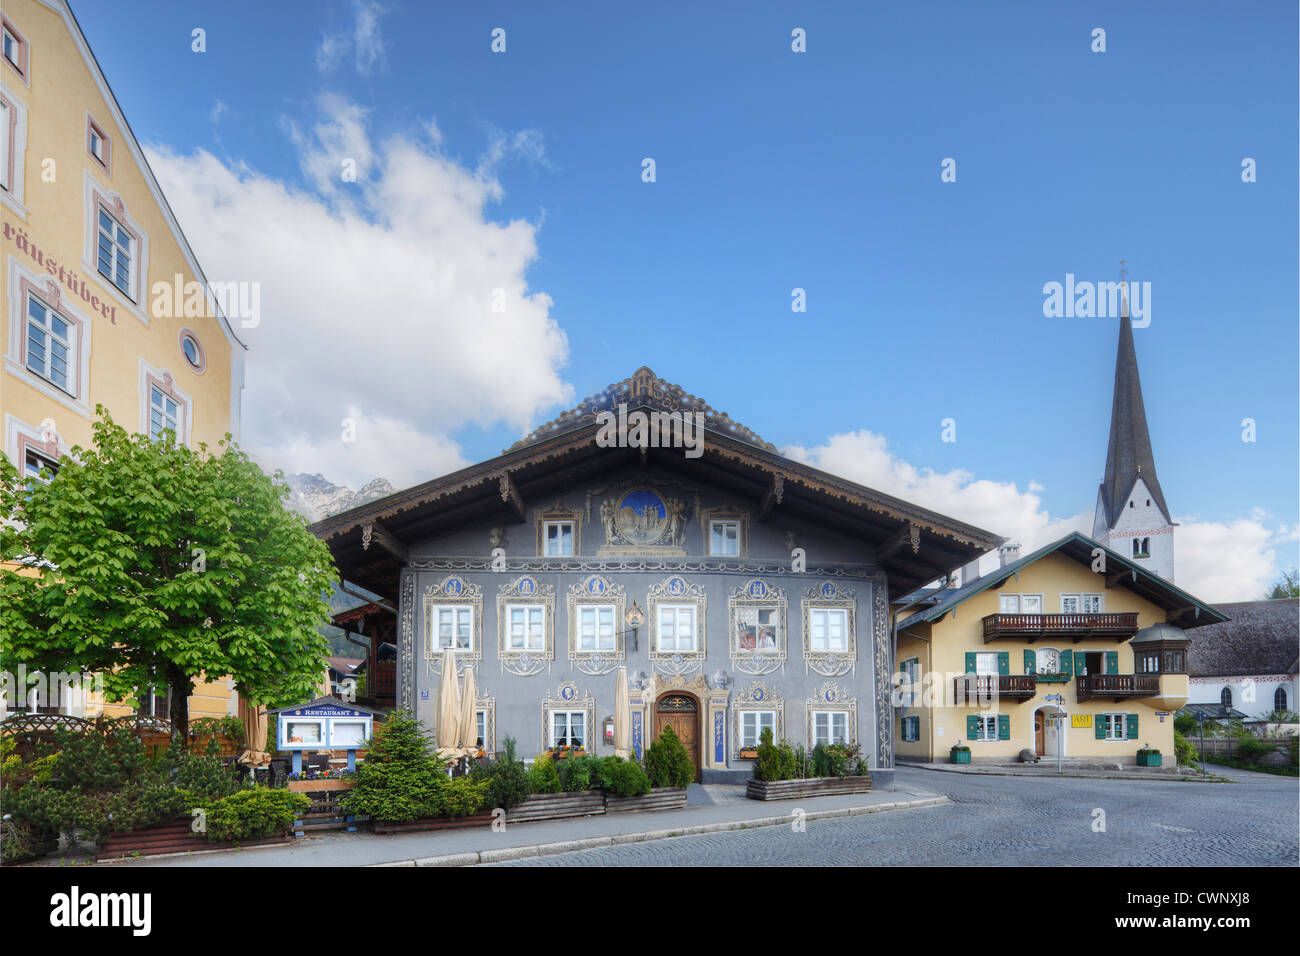 Germany, Bavaria, Garmisch-Partenkirchen, View of parish church and Husar Inn - Stock Image